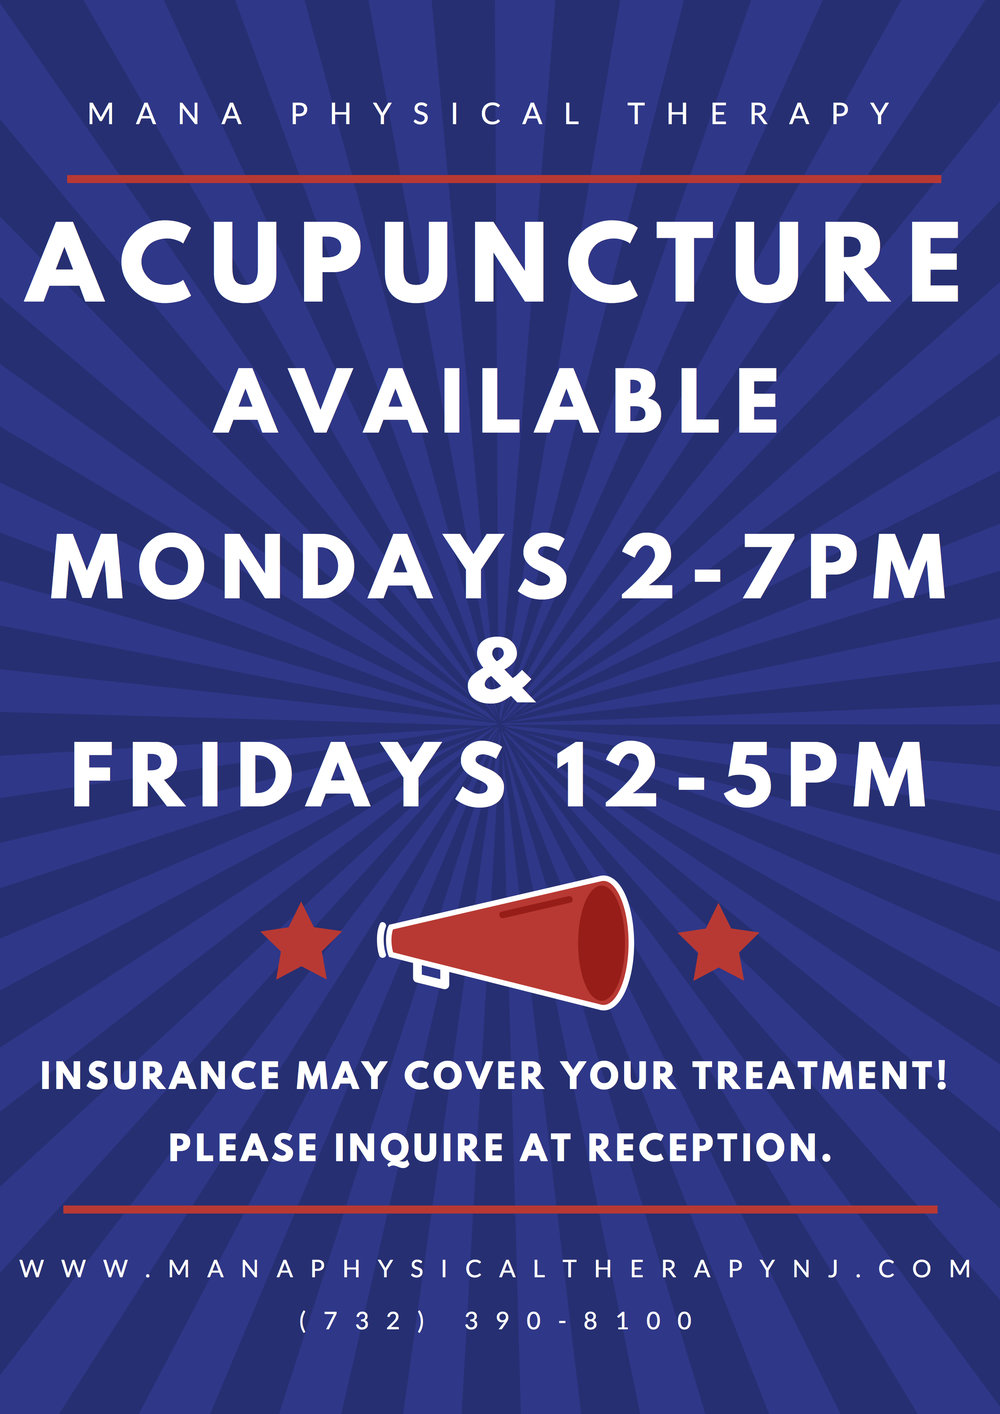 Acupuncture Treatment Hours